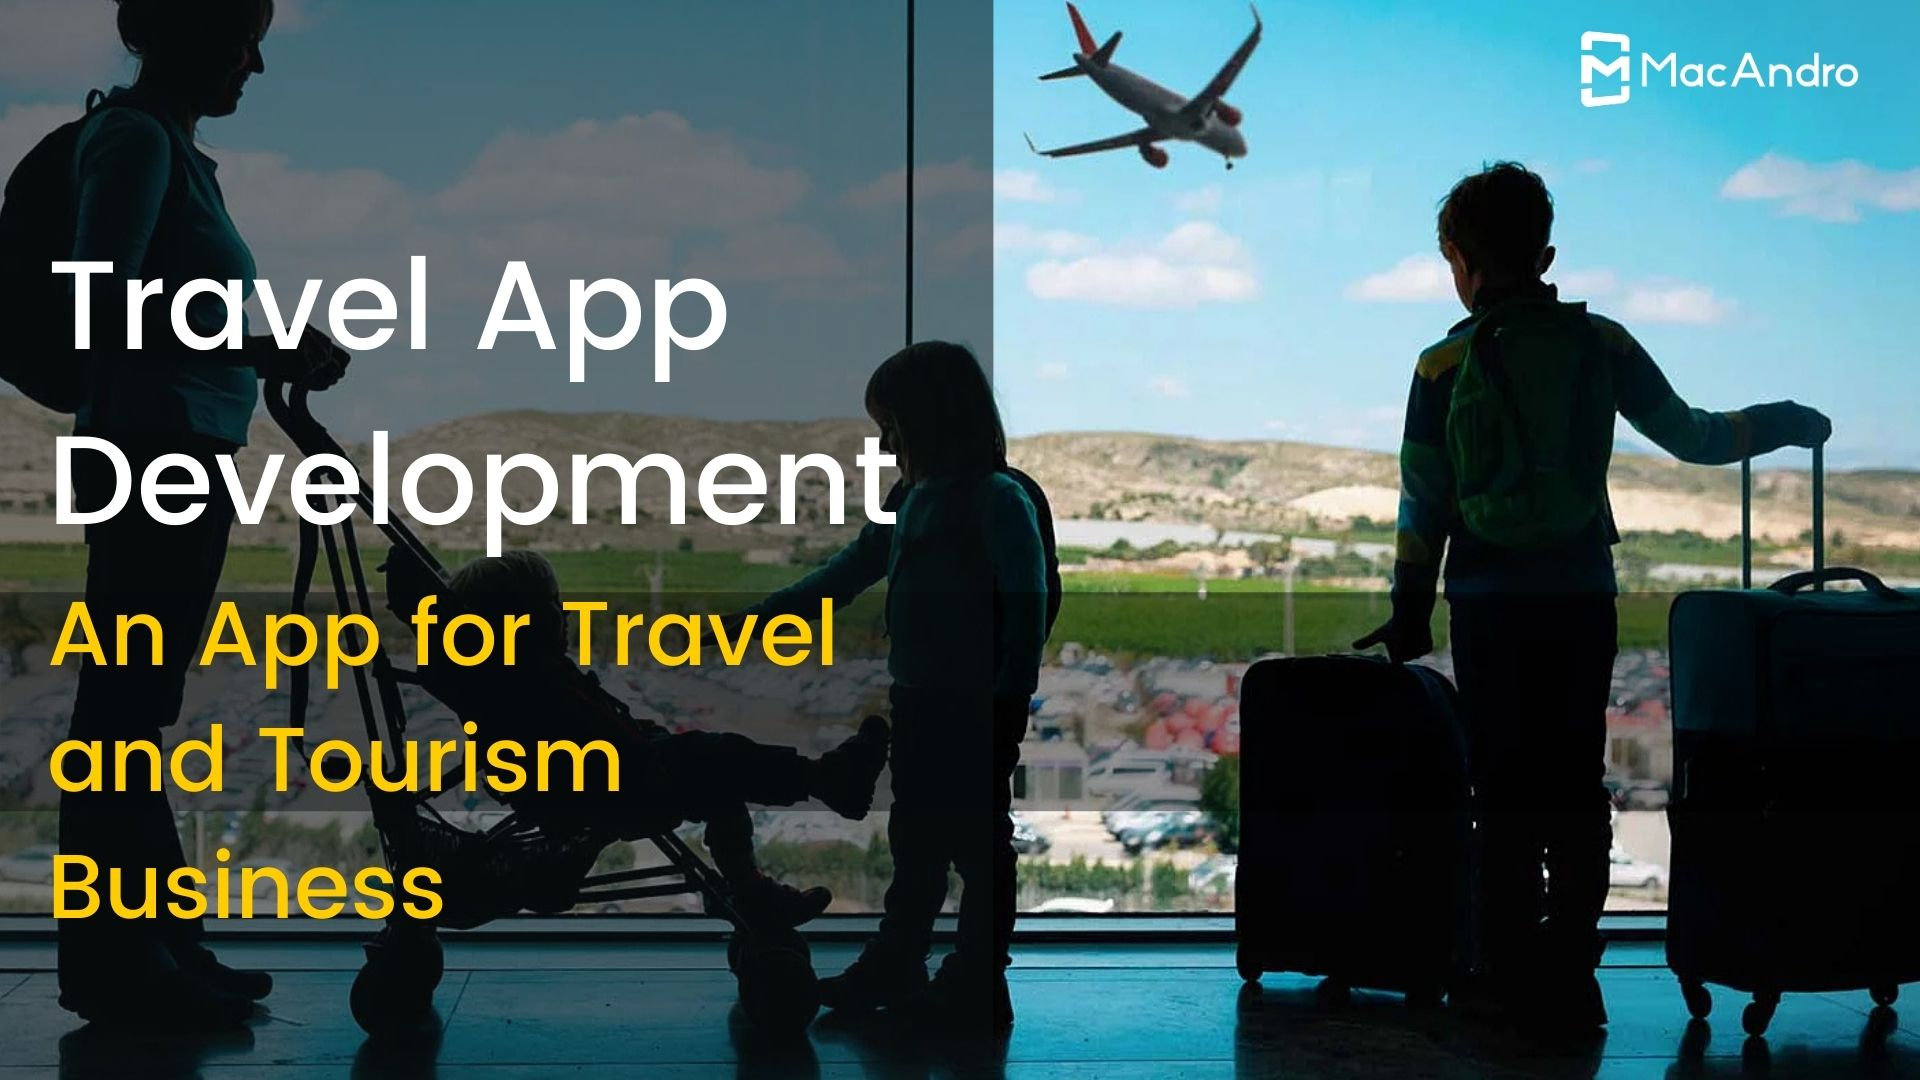 How to Build a Travel App for Travel and Tourism Business?